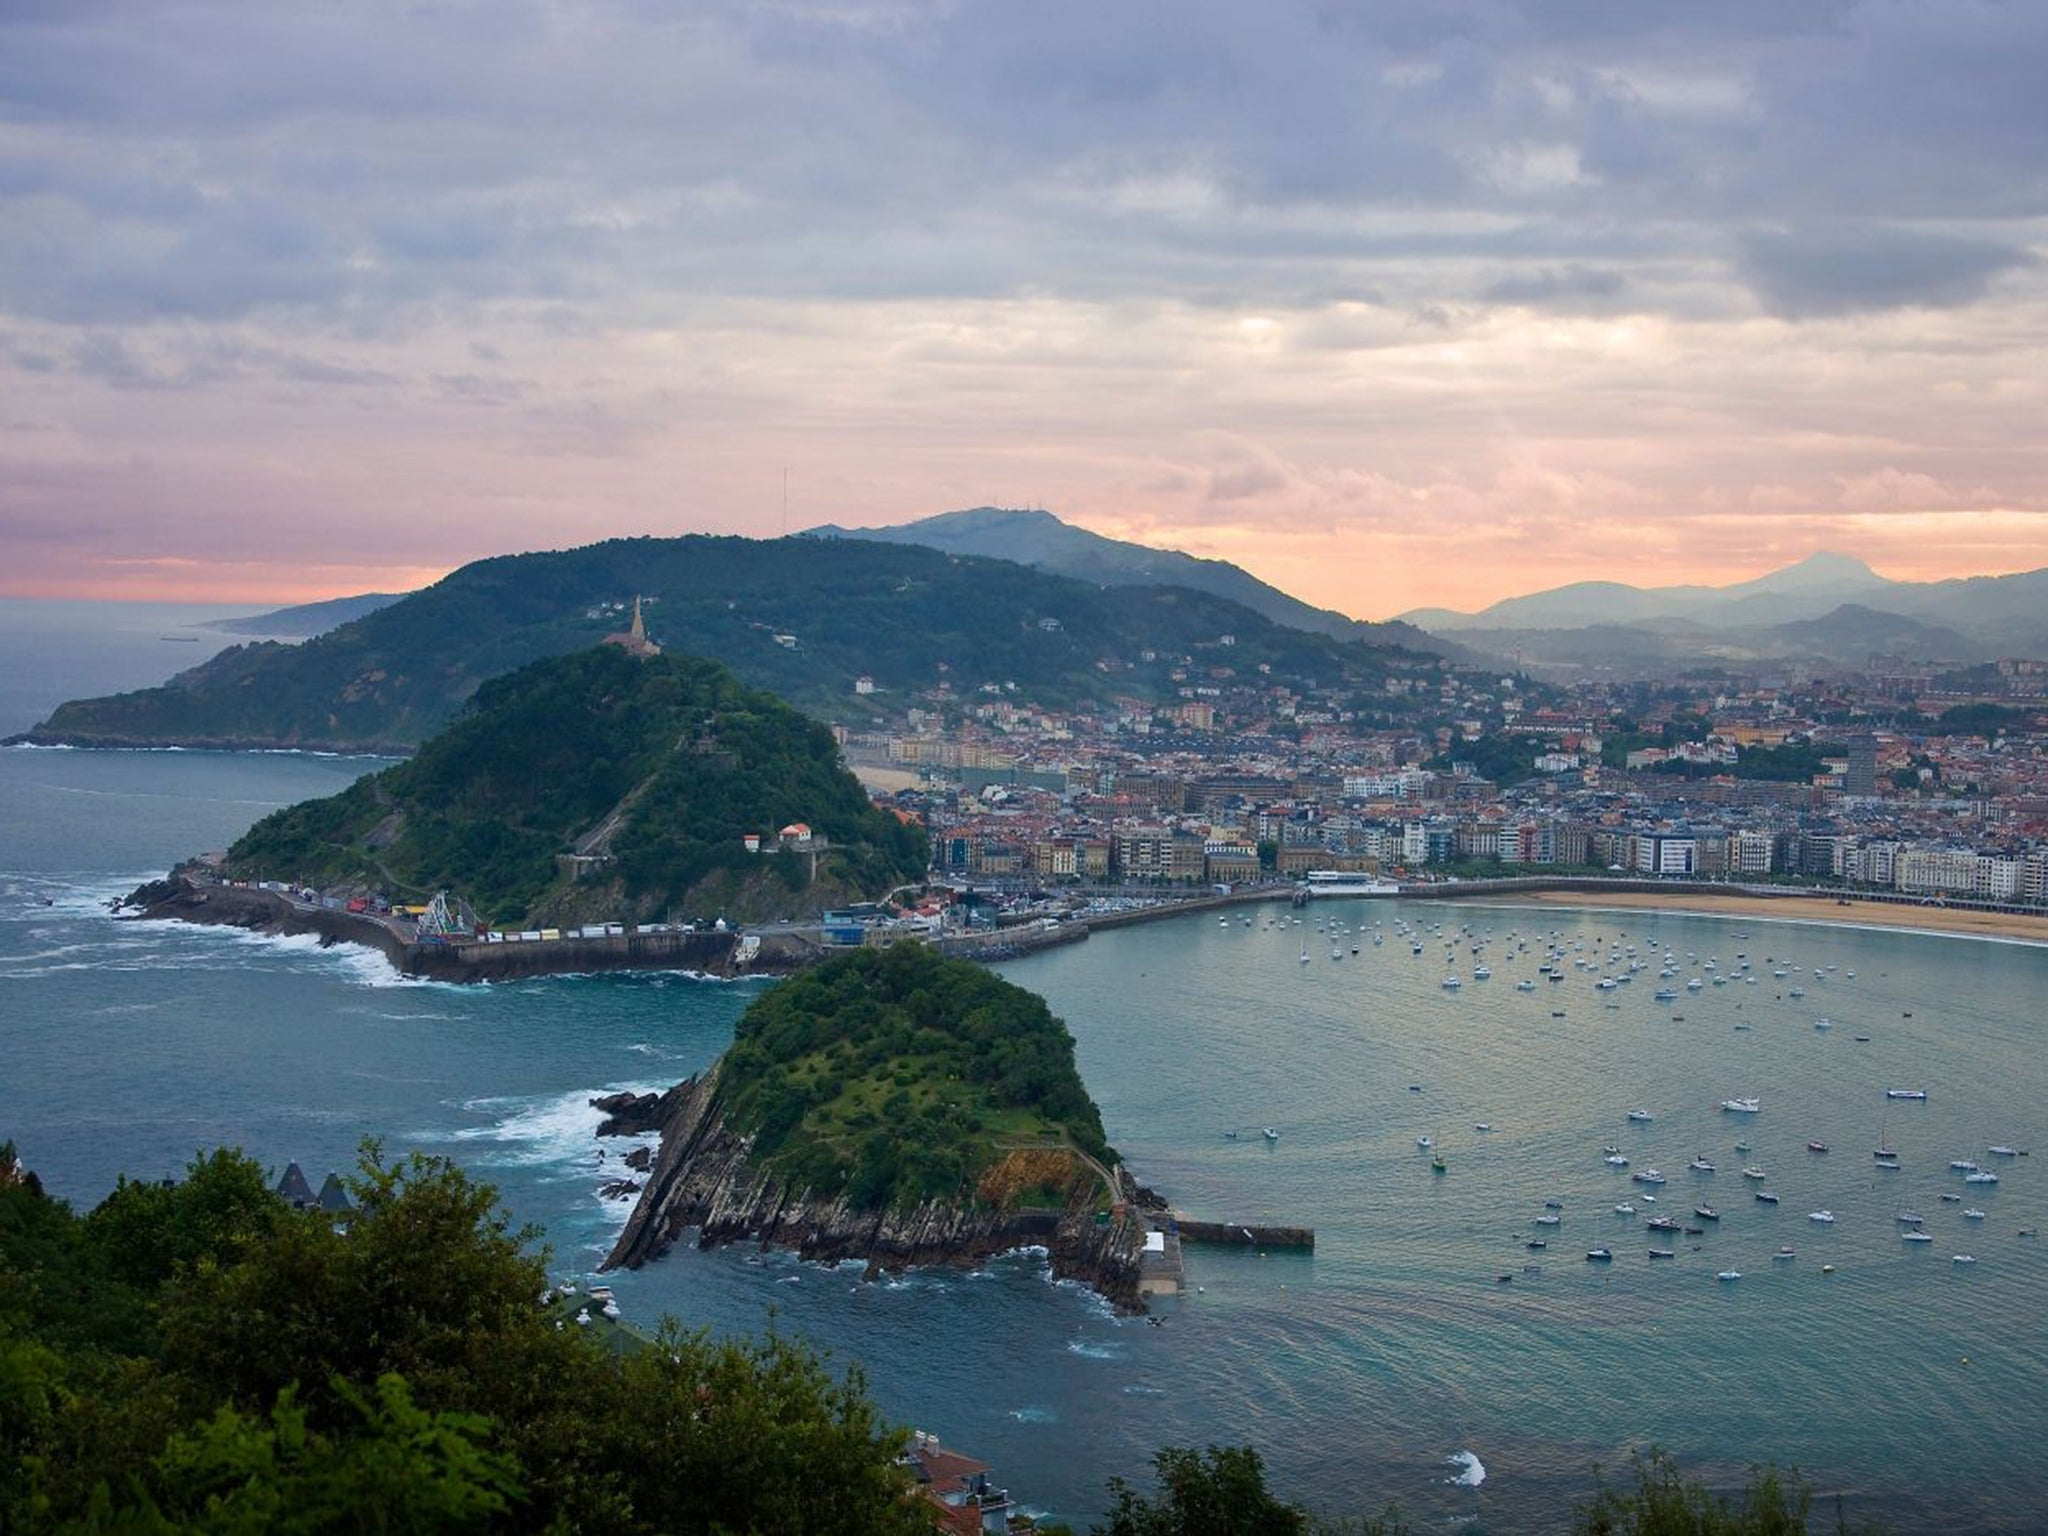 san sebastian dating site However, others insist that this festivity has roots dating back to 1836 and that it  was  during the 24 hours of st sebastian's feast day, the entire city is.